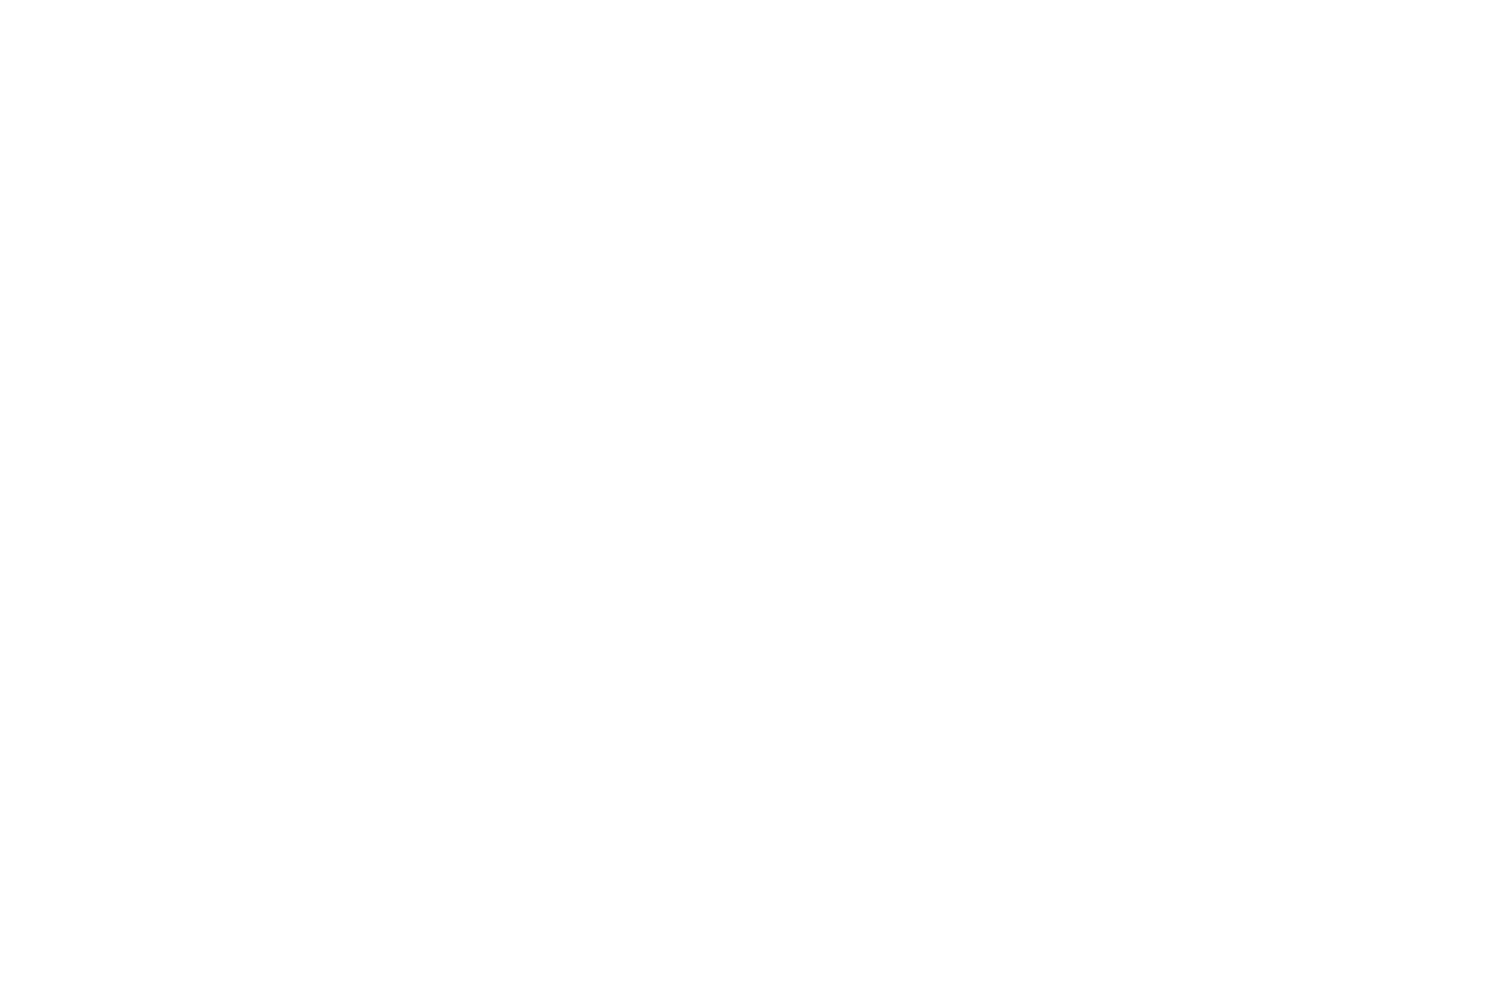 Bellmont Securities